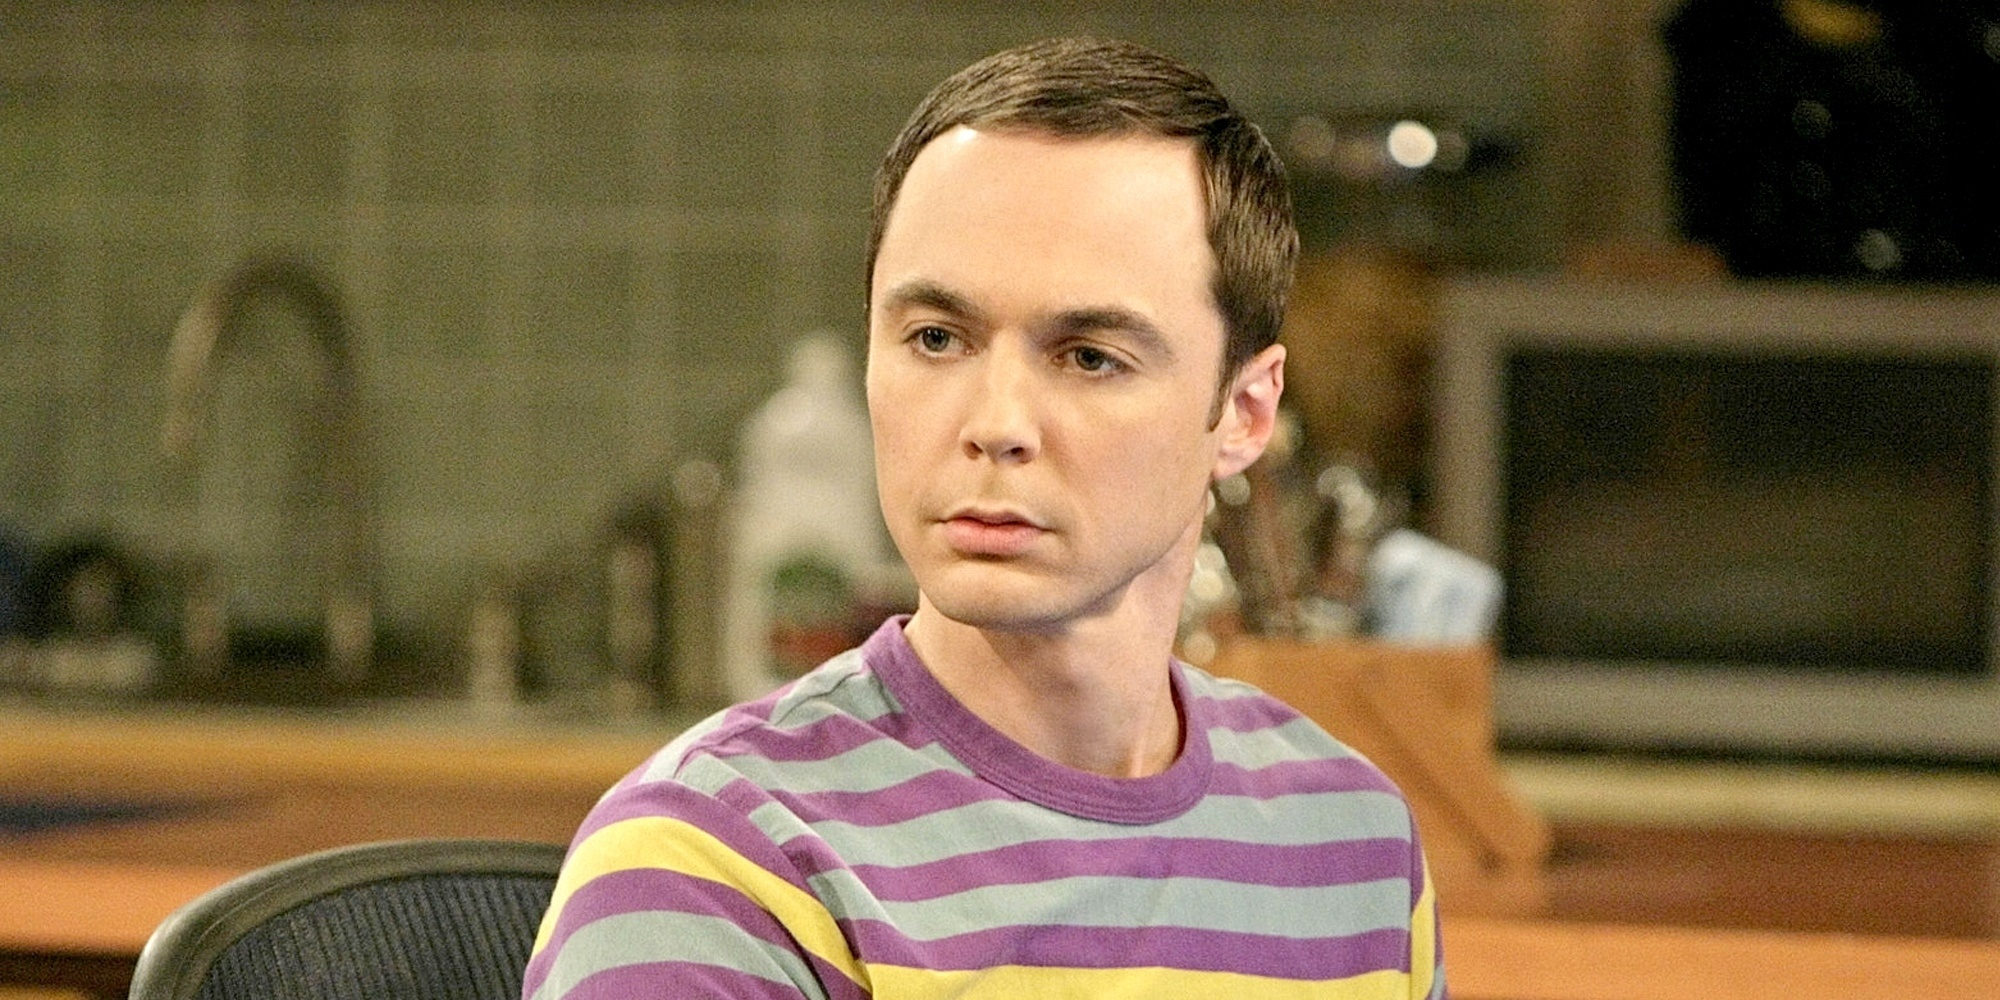 Jim Parsons as Sheldon Cooper, The Big Bang Theory